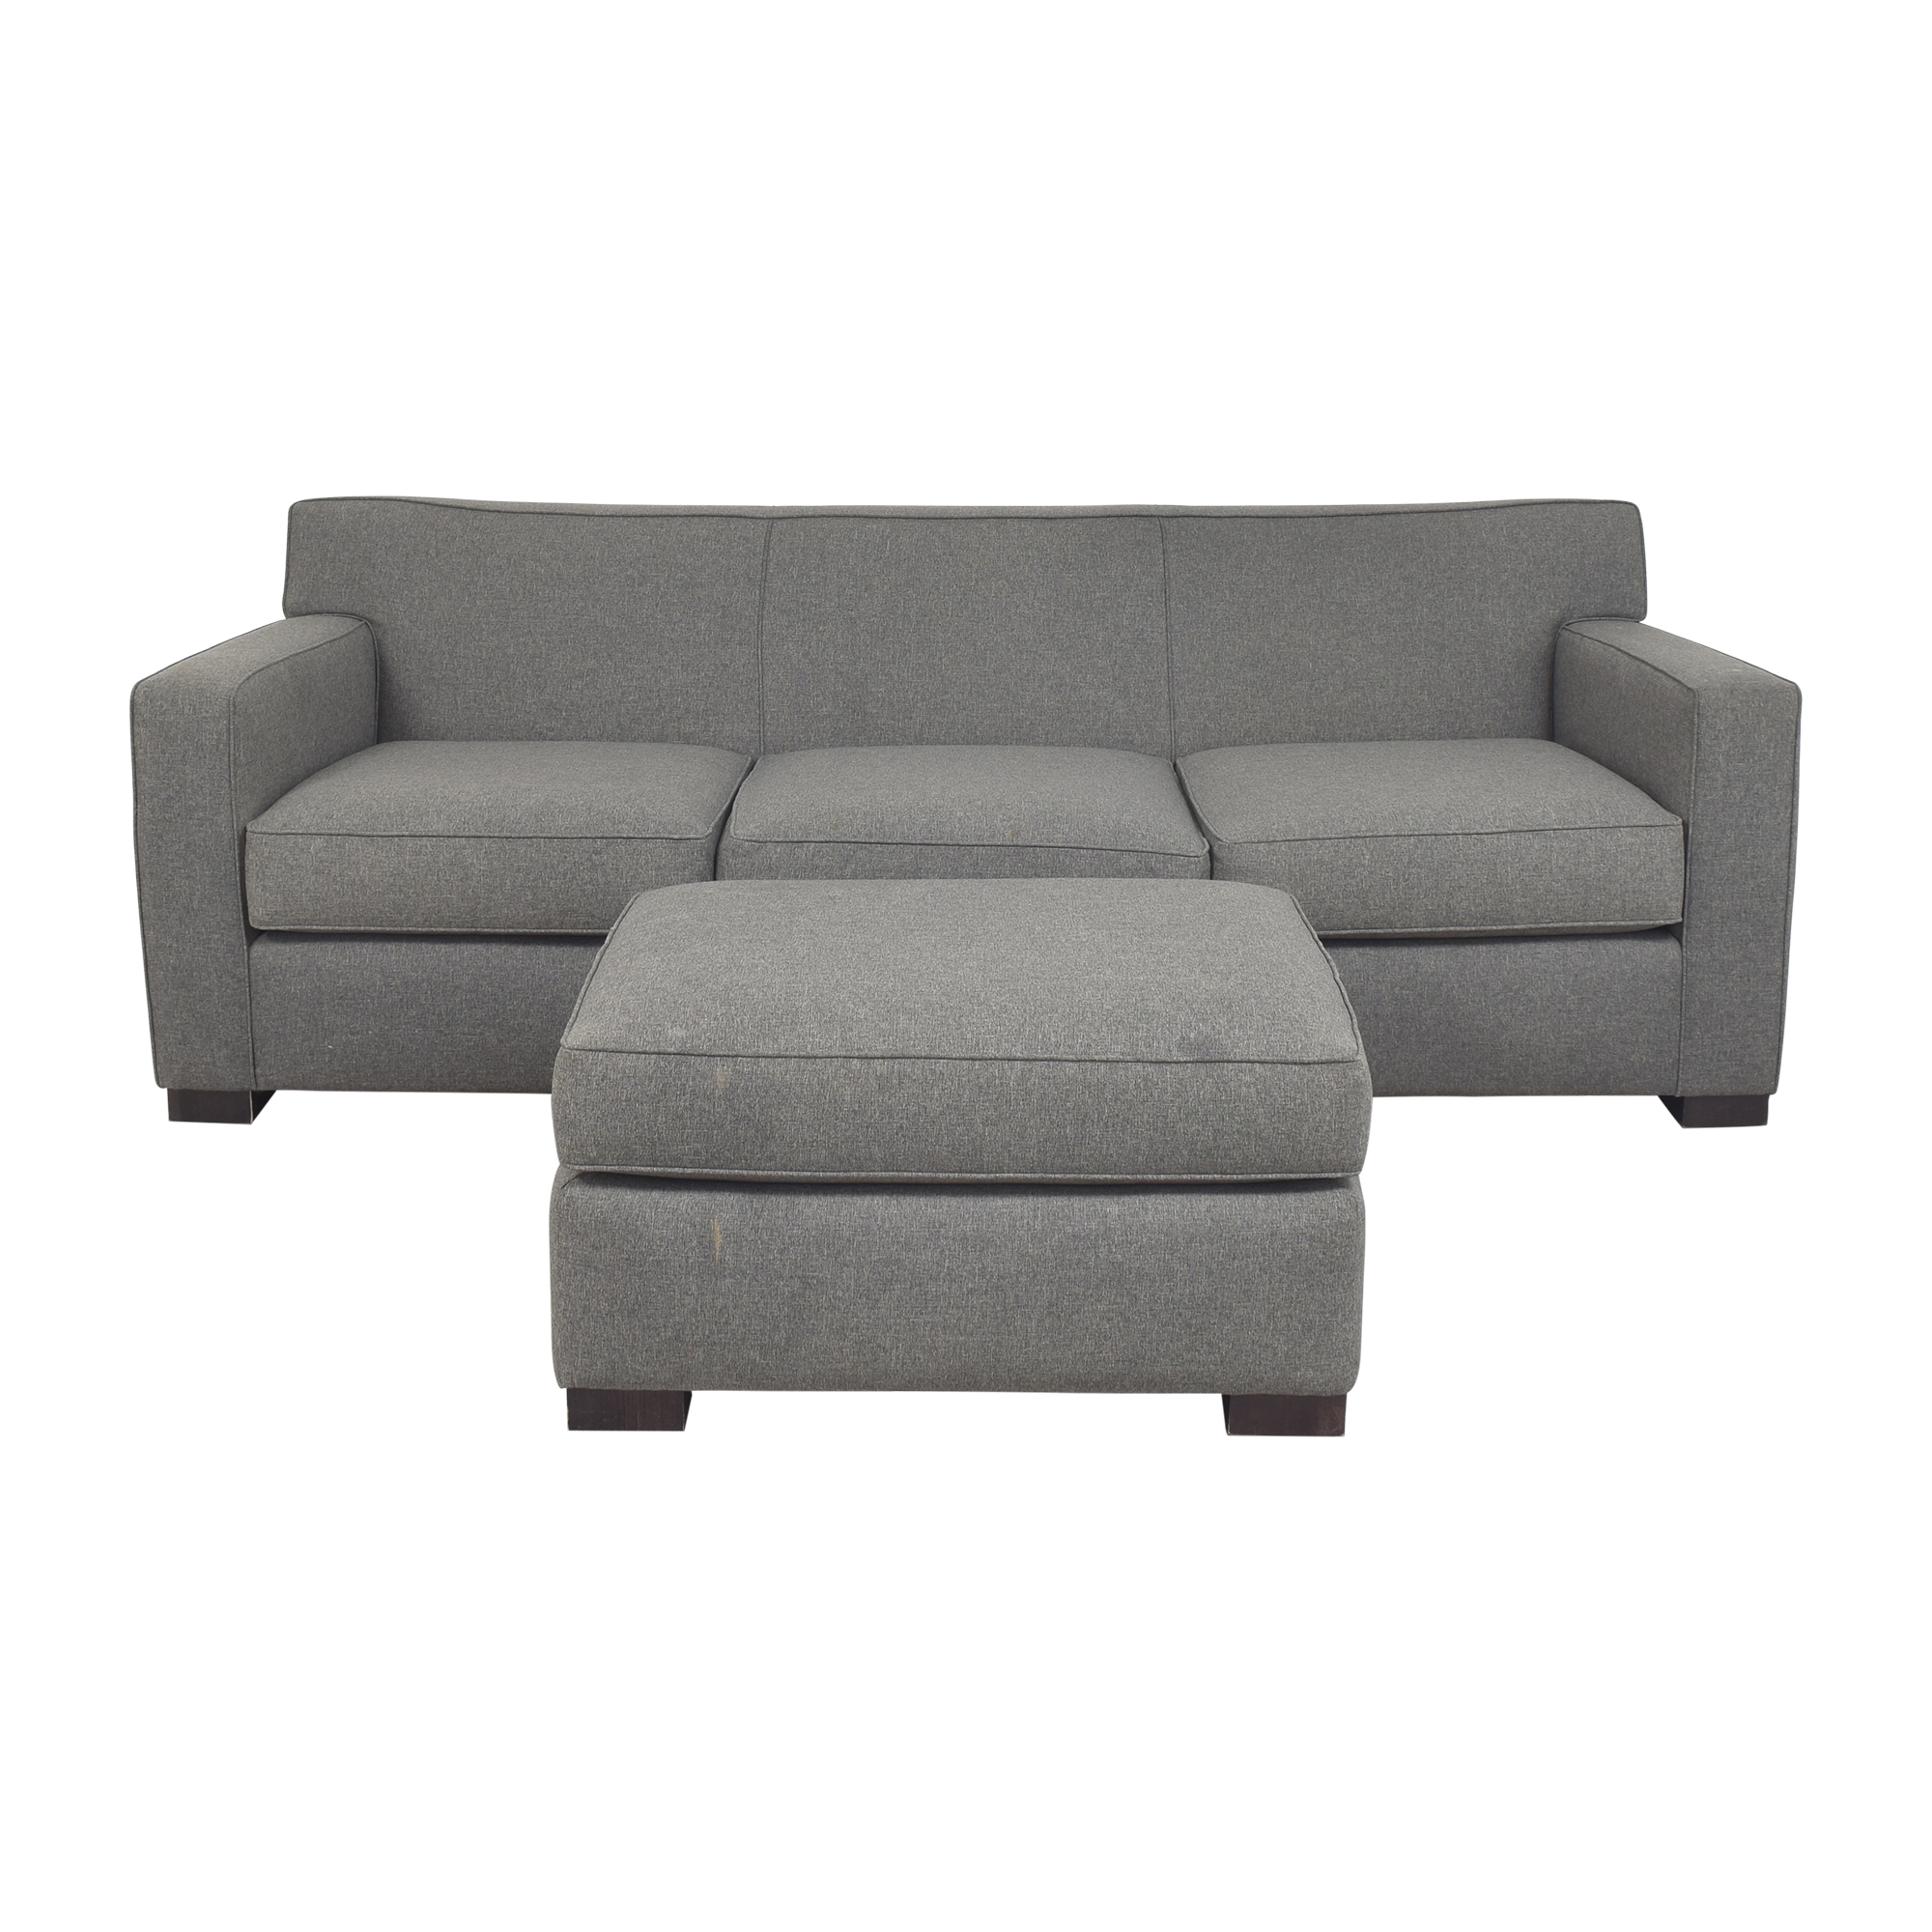 Room & Board Room & Board Dean Sofa with Ottoman on sale